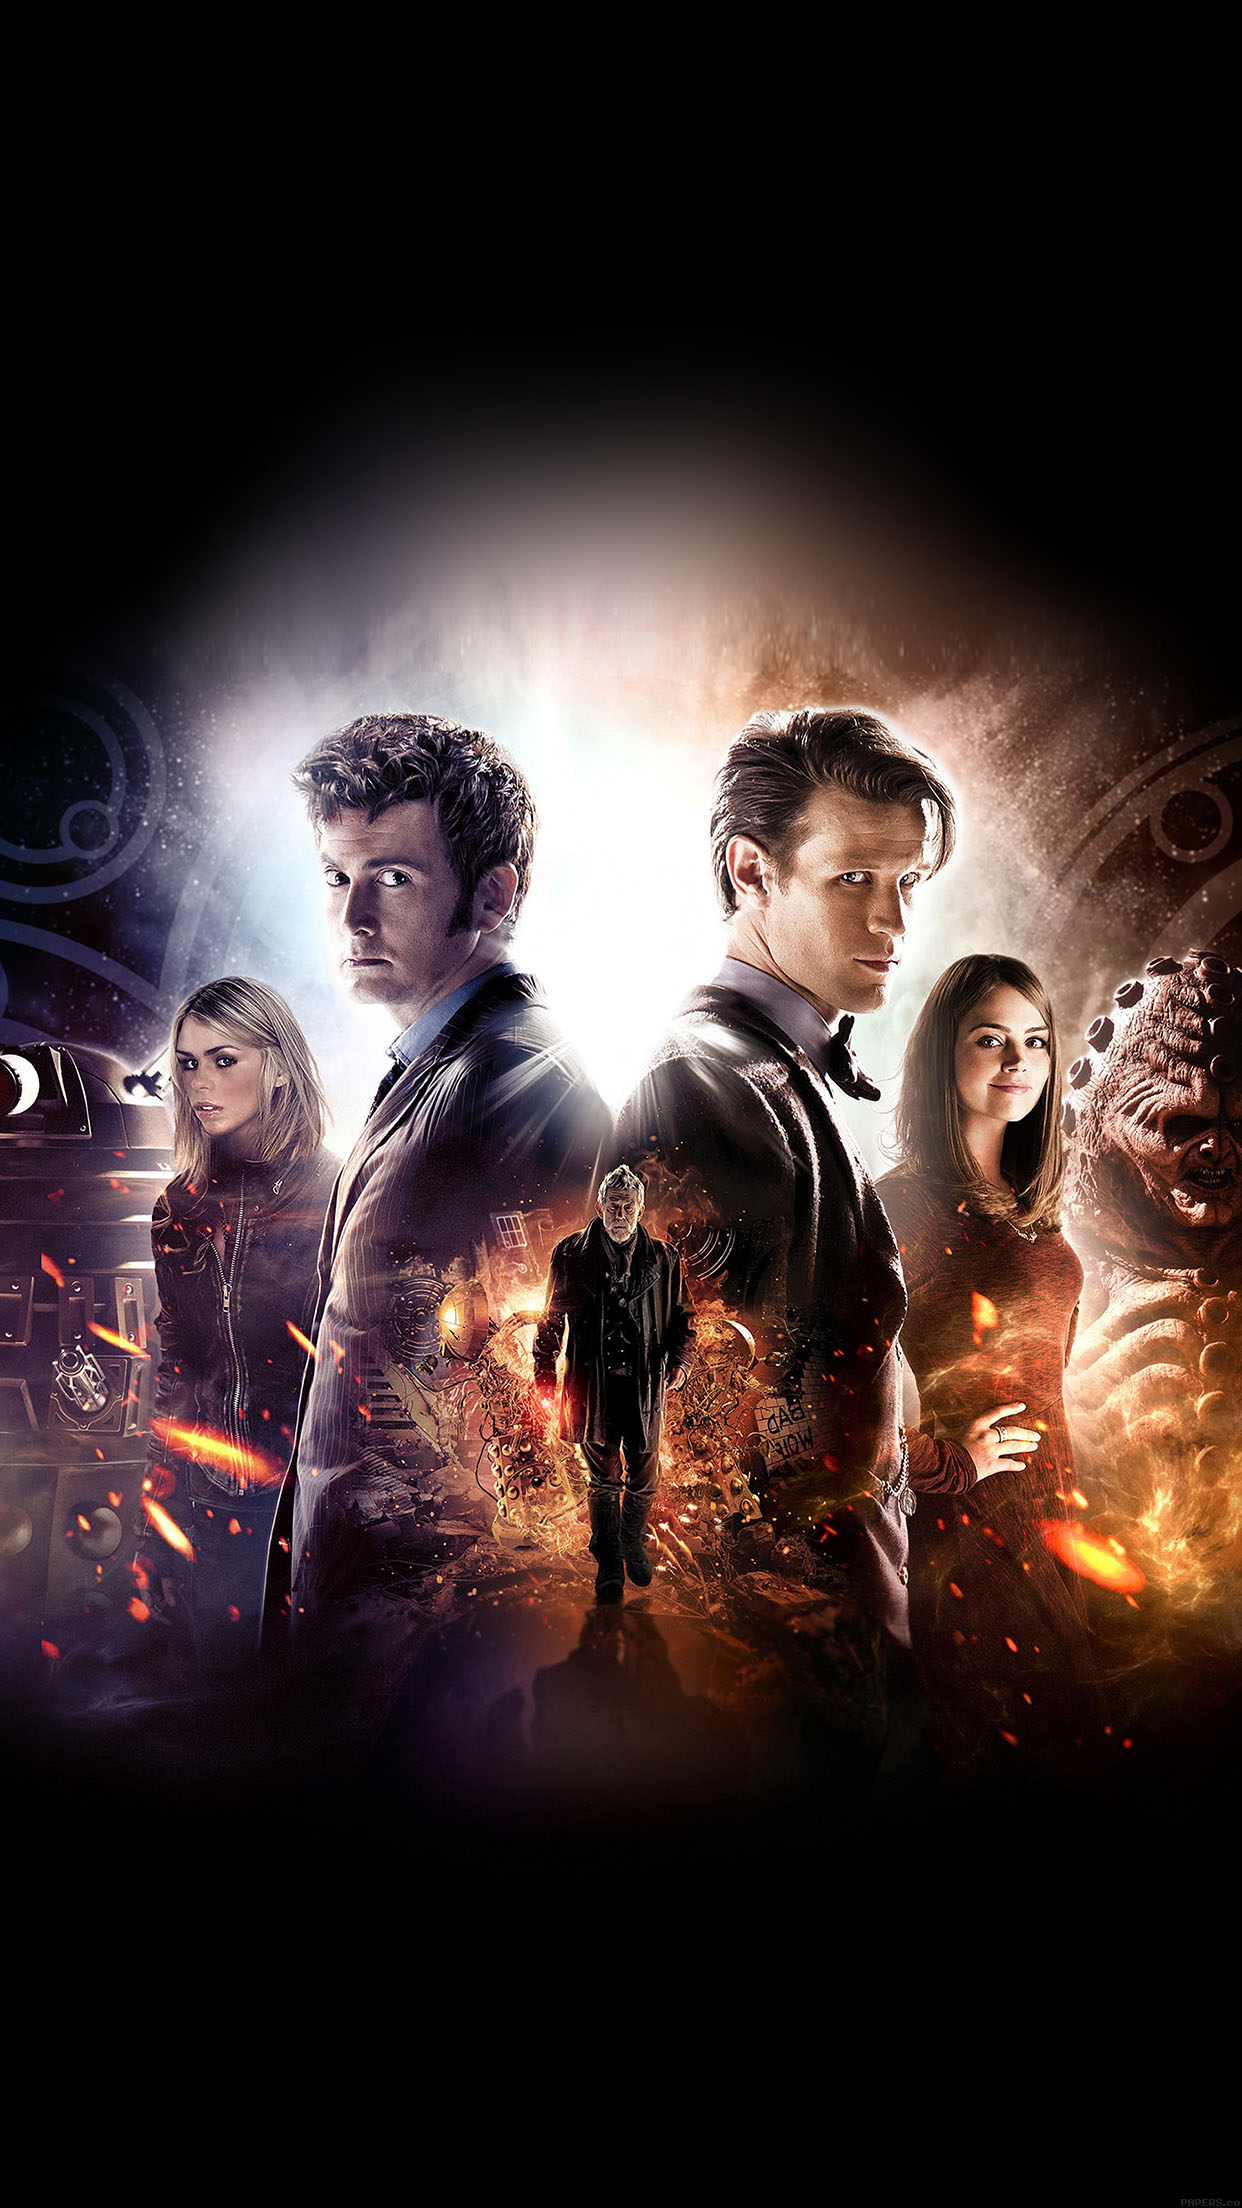 Wallpaper Doctor Who 50th Poster Film Face Android Wallpaper